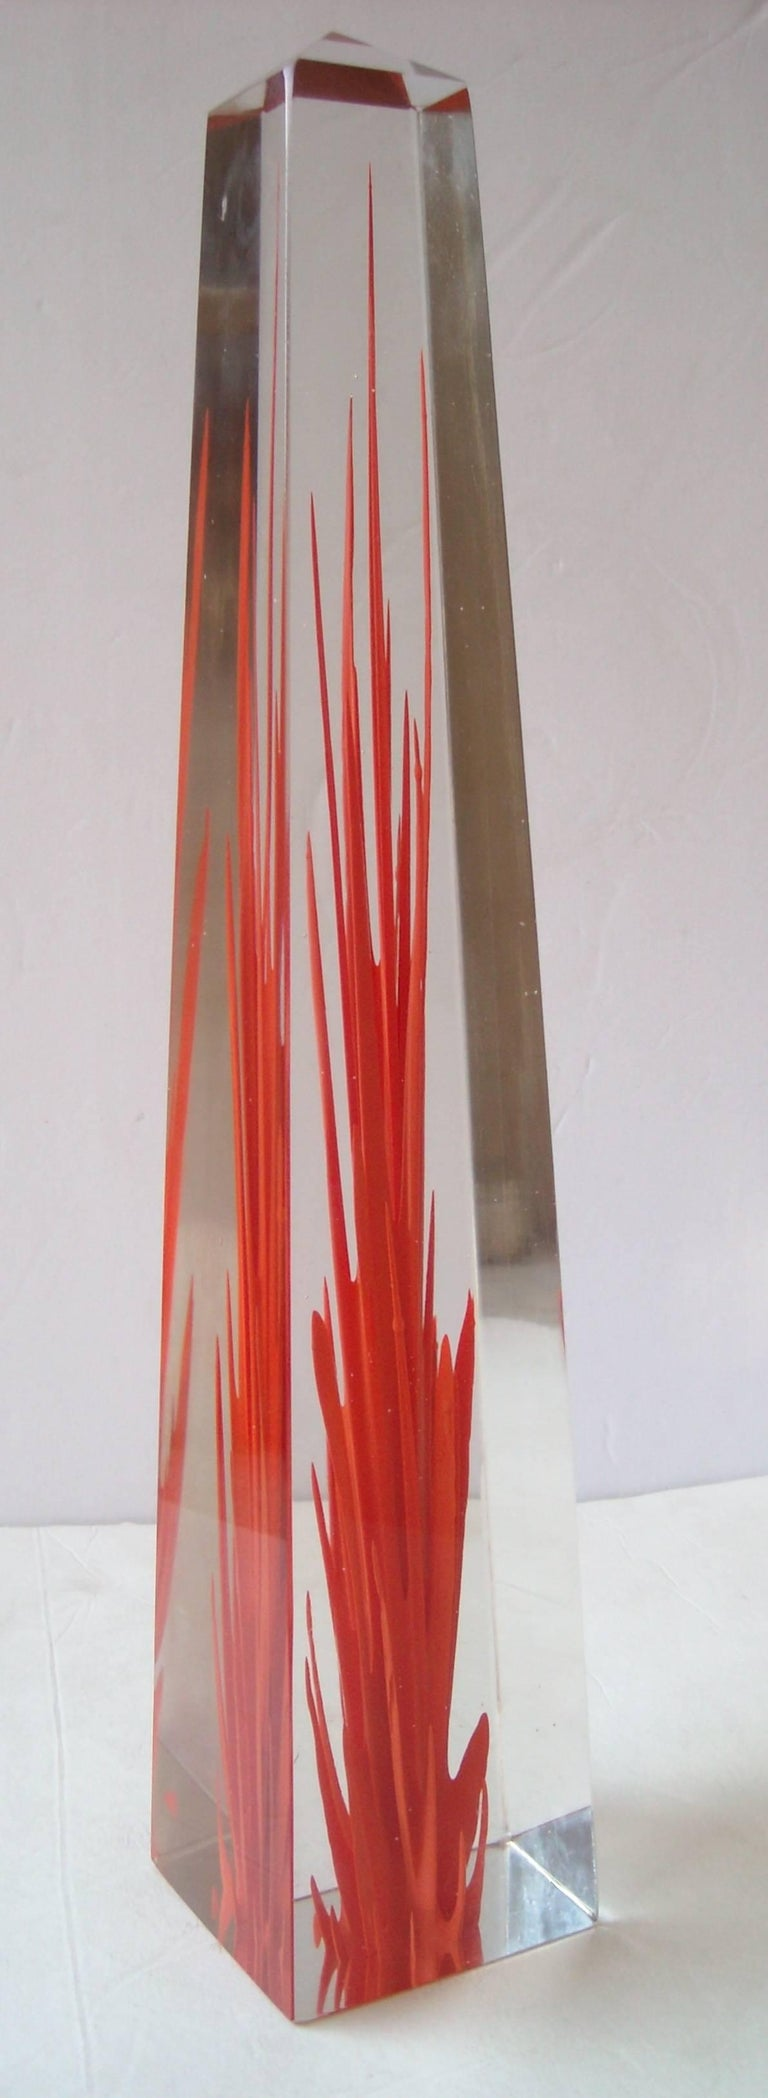 Amazing Murano glass obelisk, made by Venini. This piece is diamond signed and still traces of the original label as shown in pictures. (Venini, Italia).